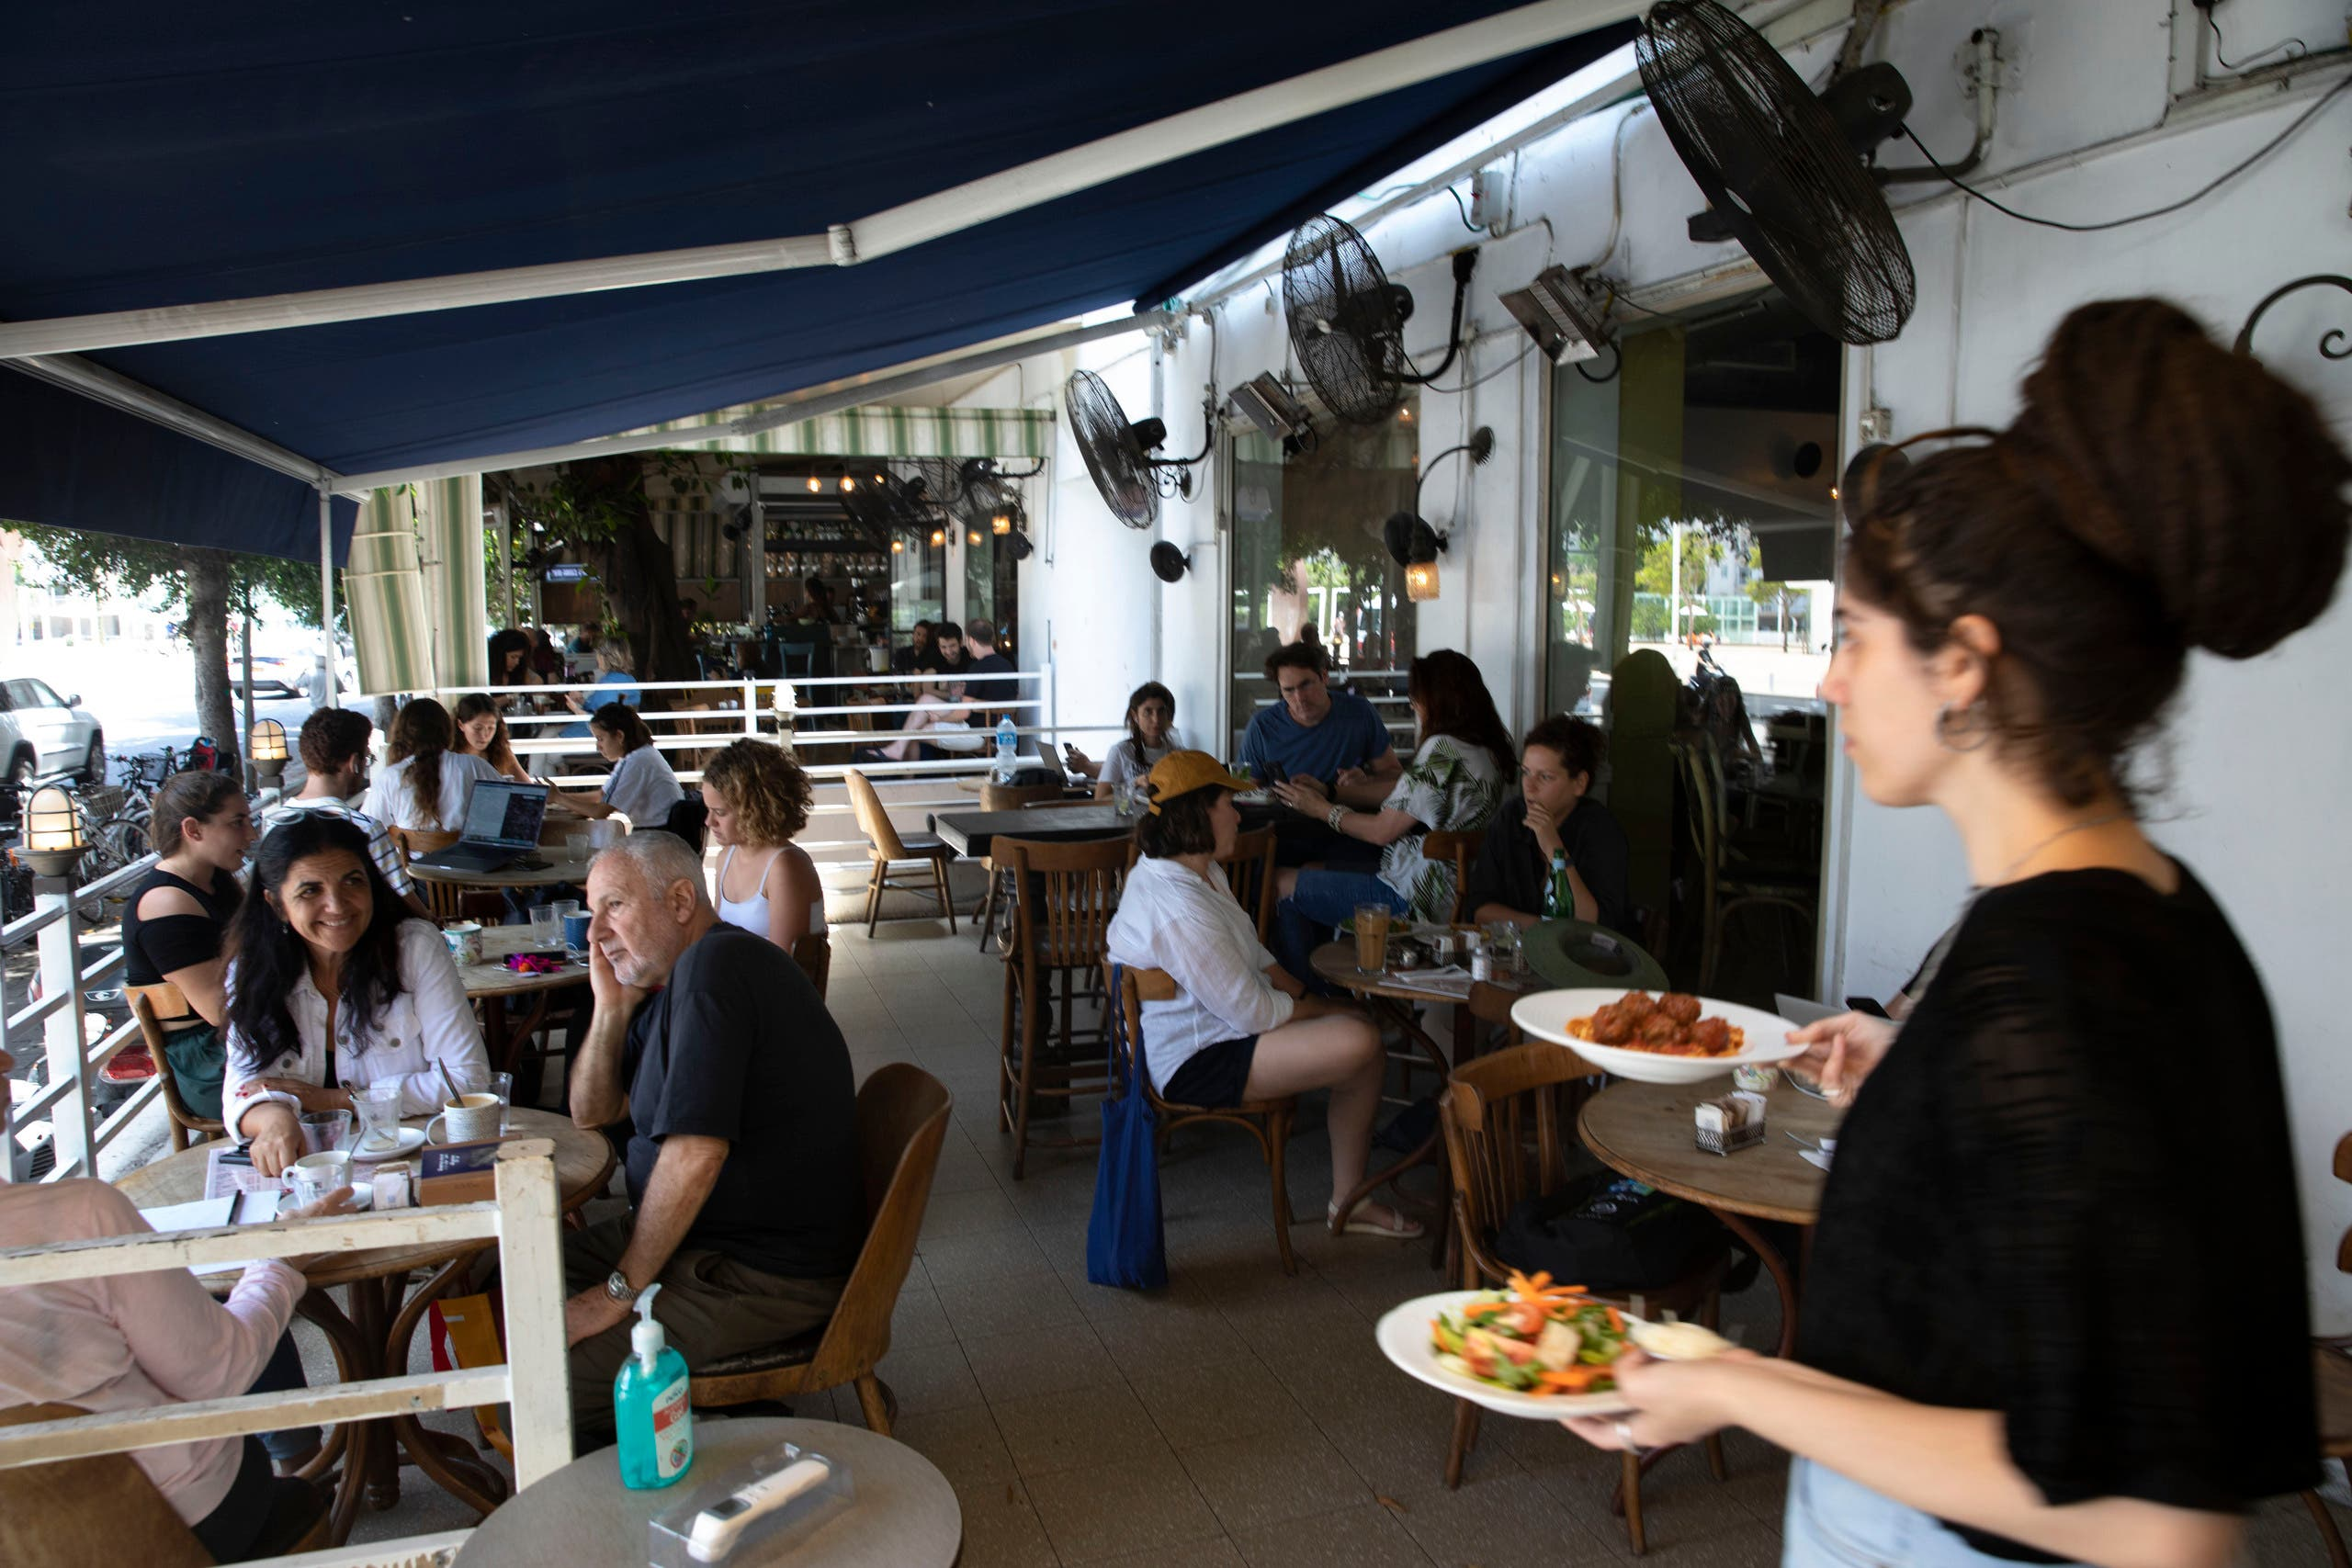 A waitress serves food at a restaurant in Tel Aviv, Israel, Wednesday, May 27, 2020. (File photo: AP)